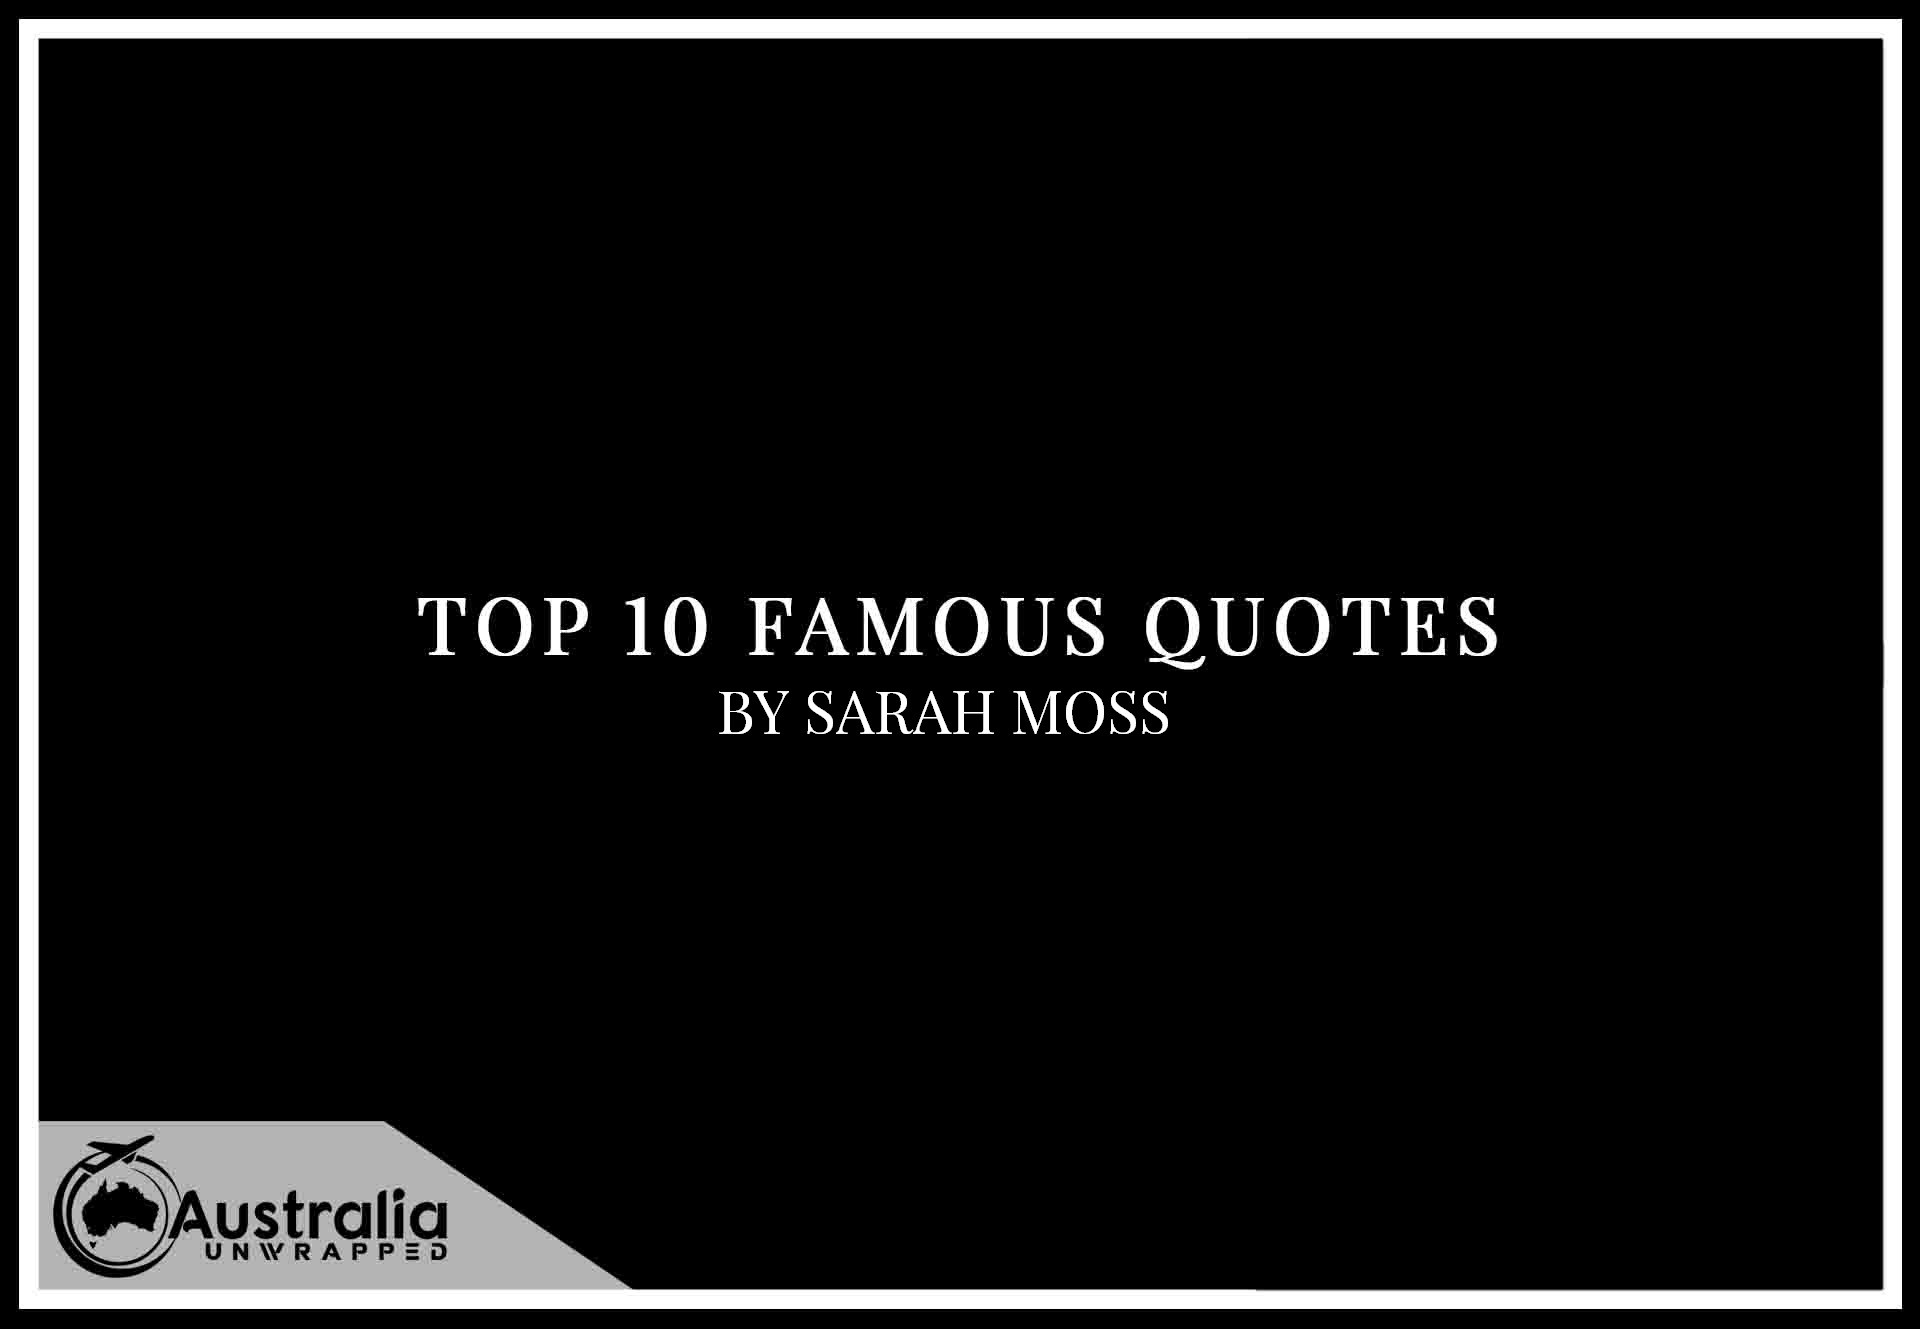 Top 10 Famous Quotes by Author Sarah Moss